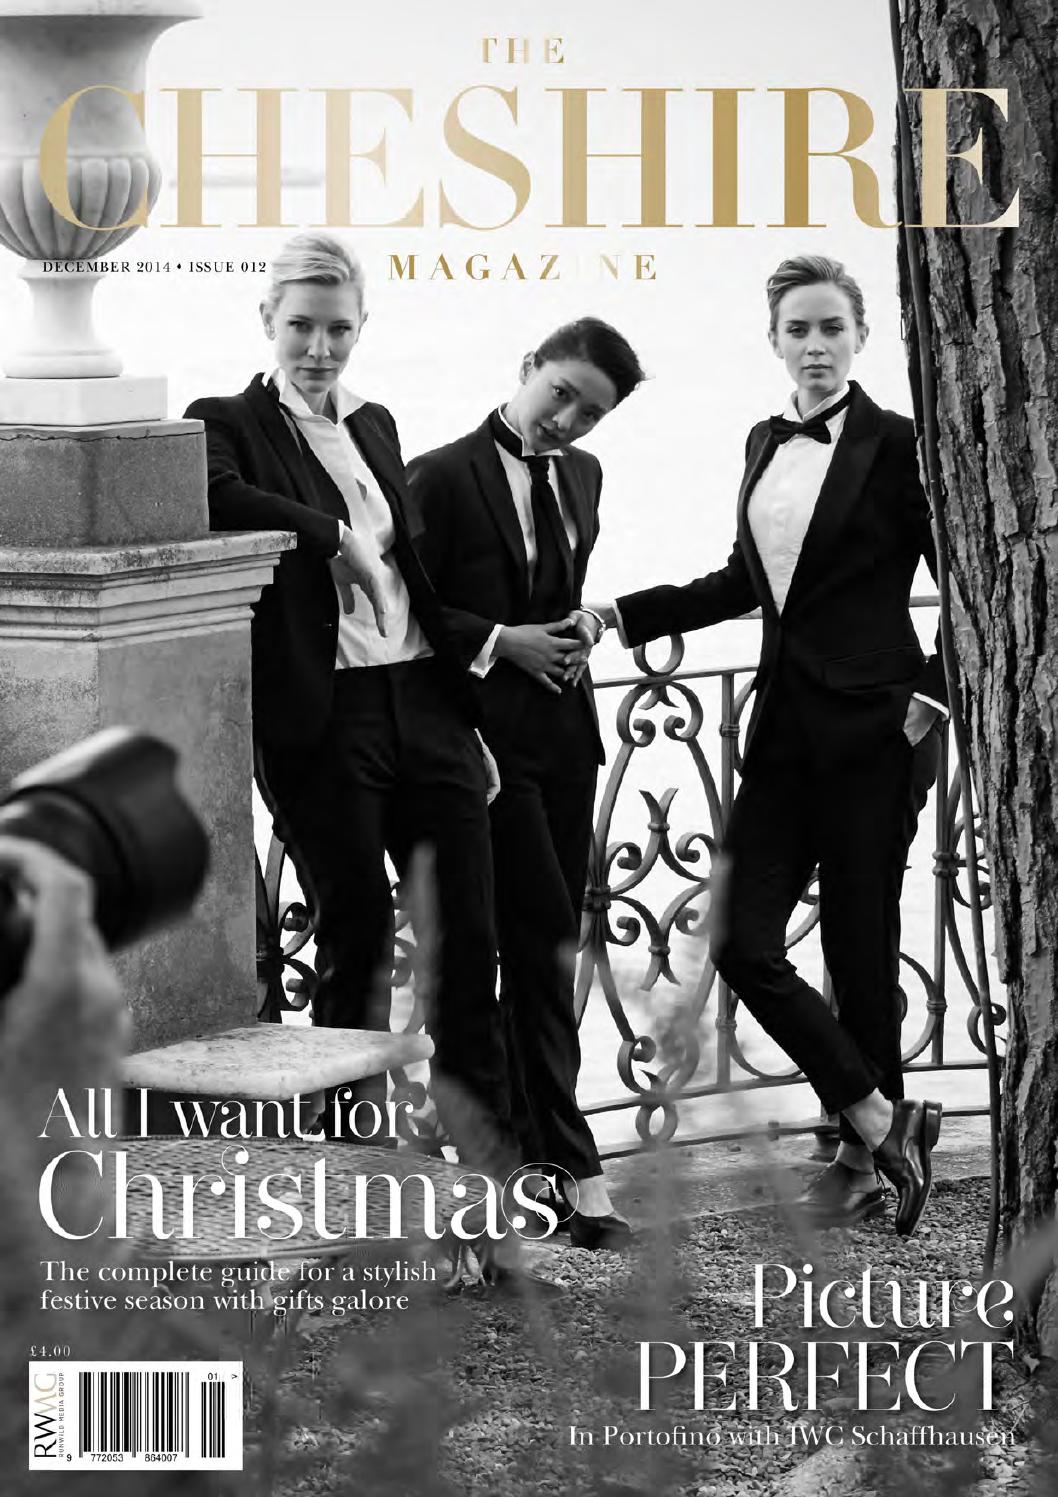 The Cheshire Magazine December 2014 by